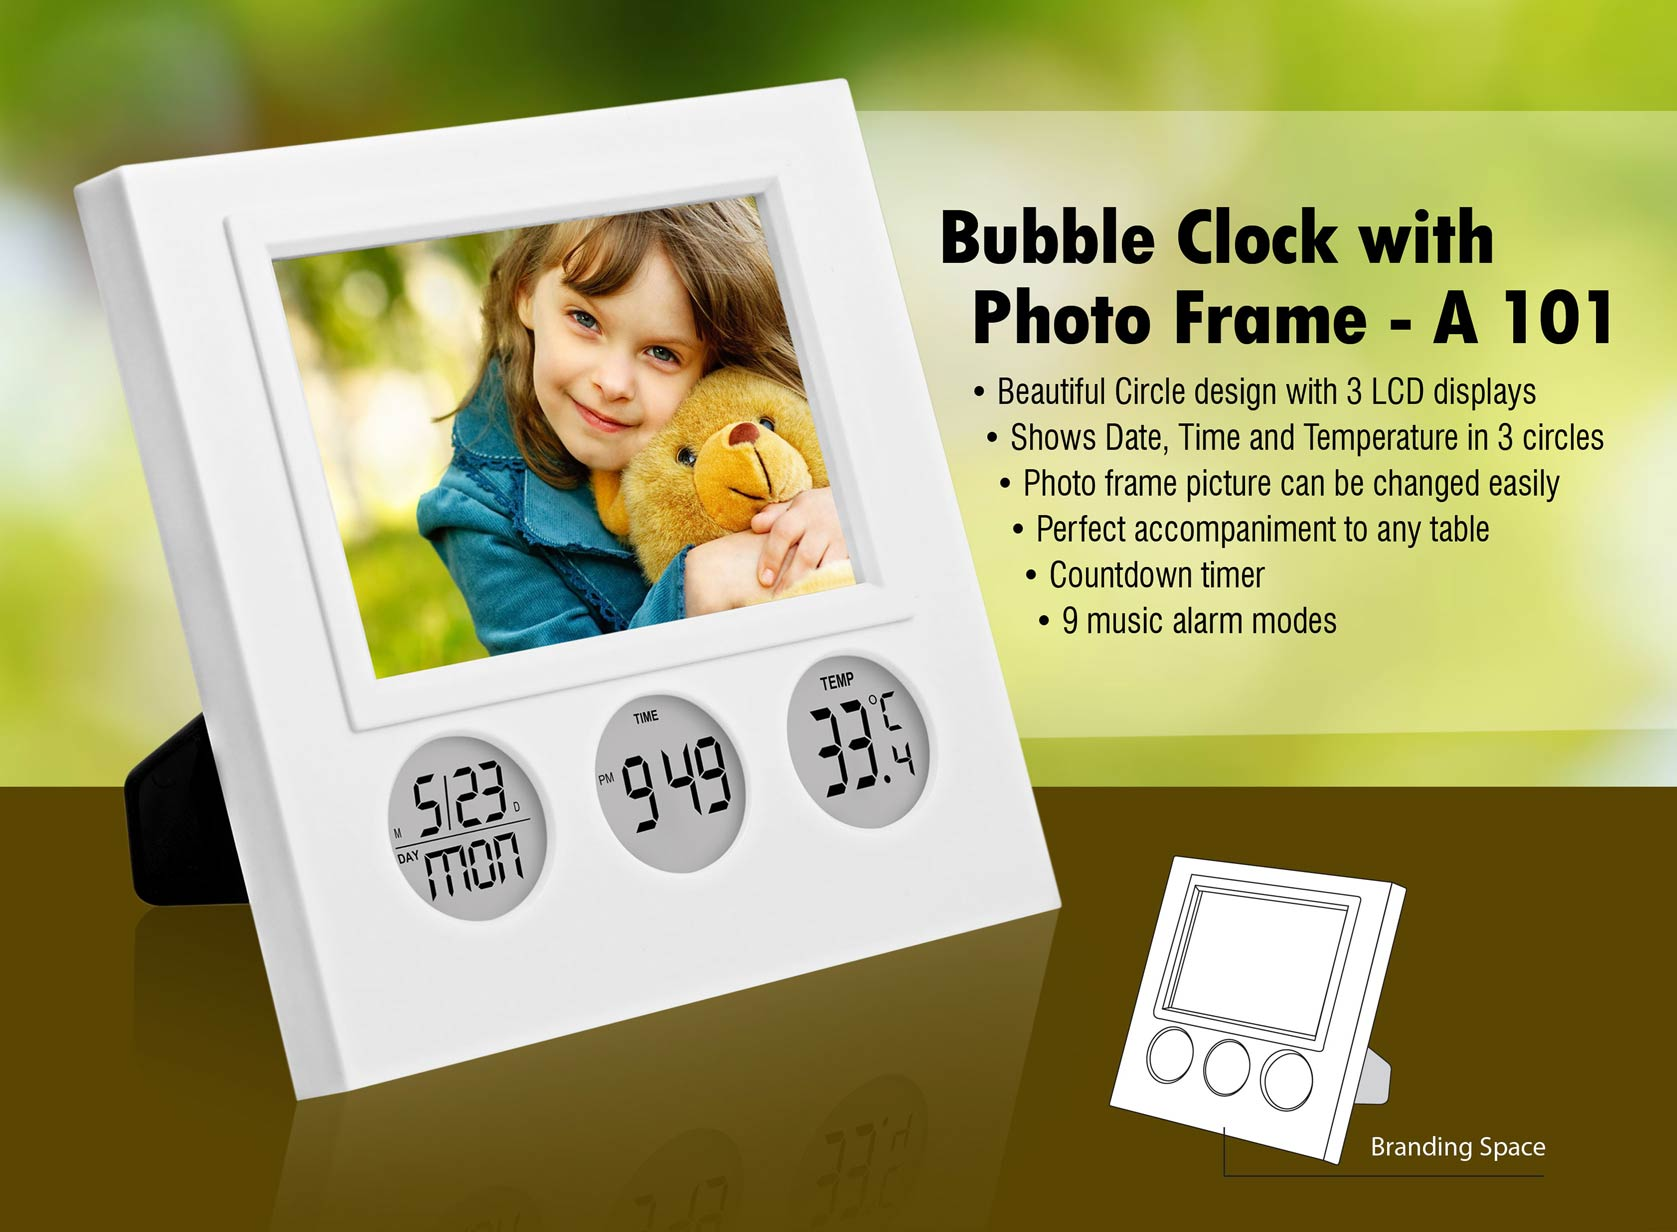 A101 Bubble Clock with Photo Frame